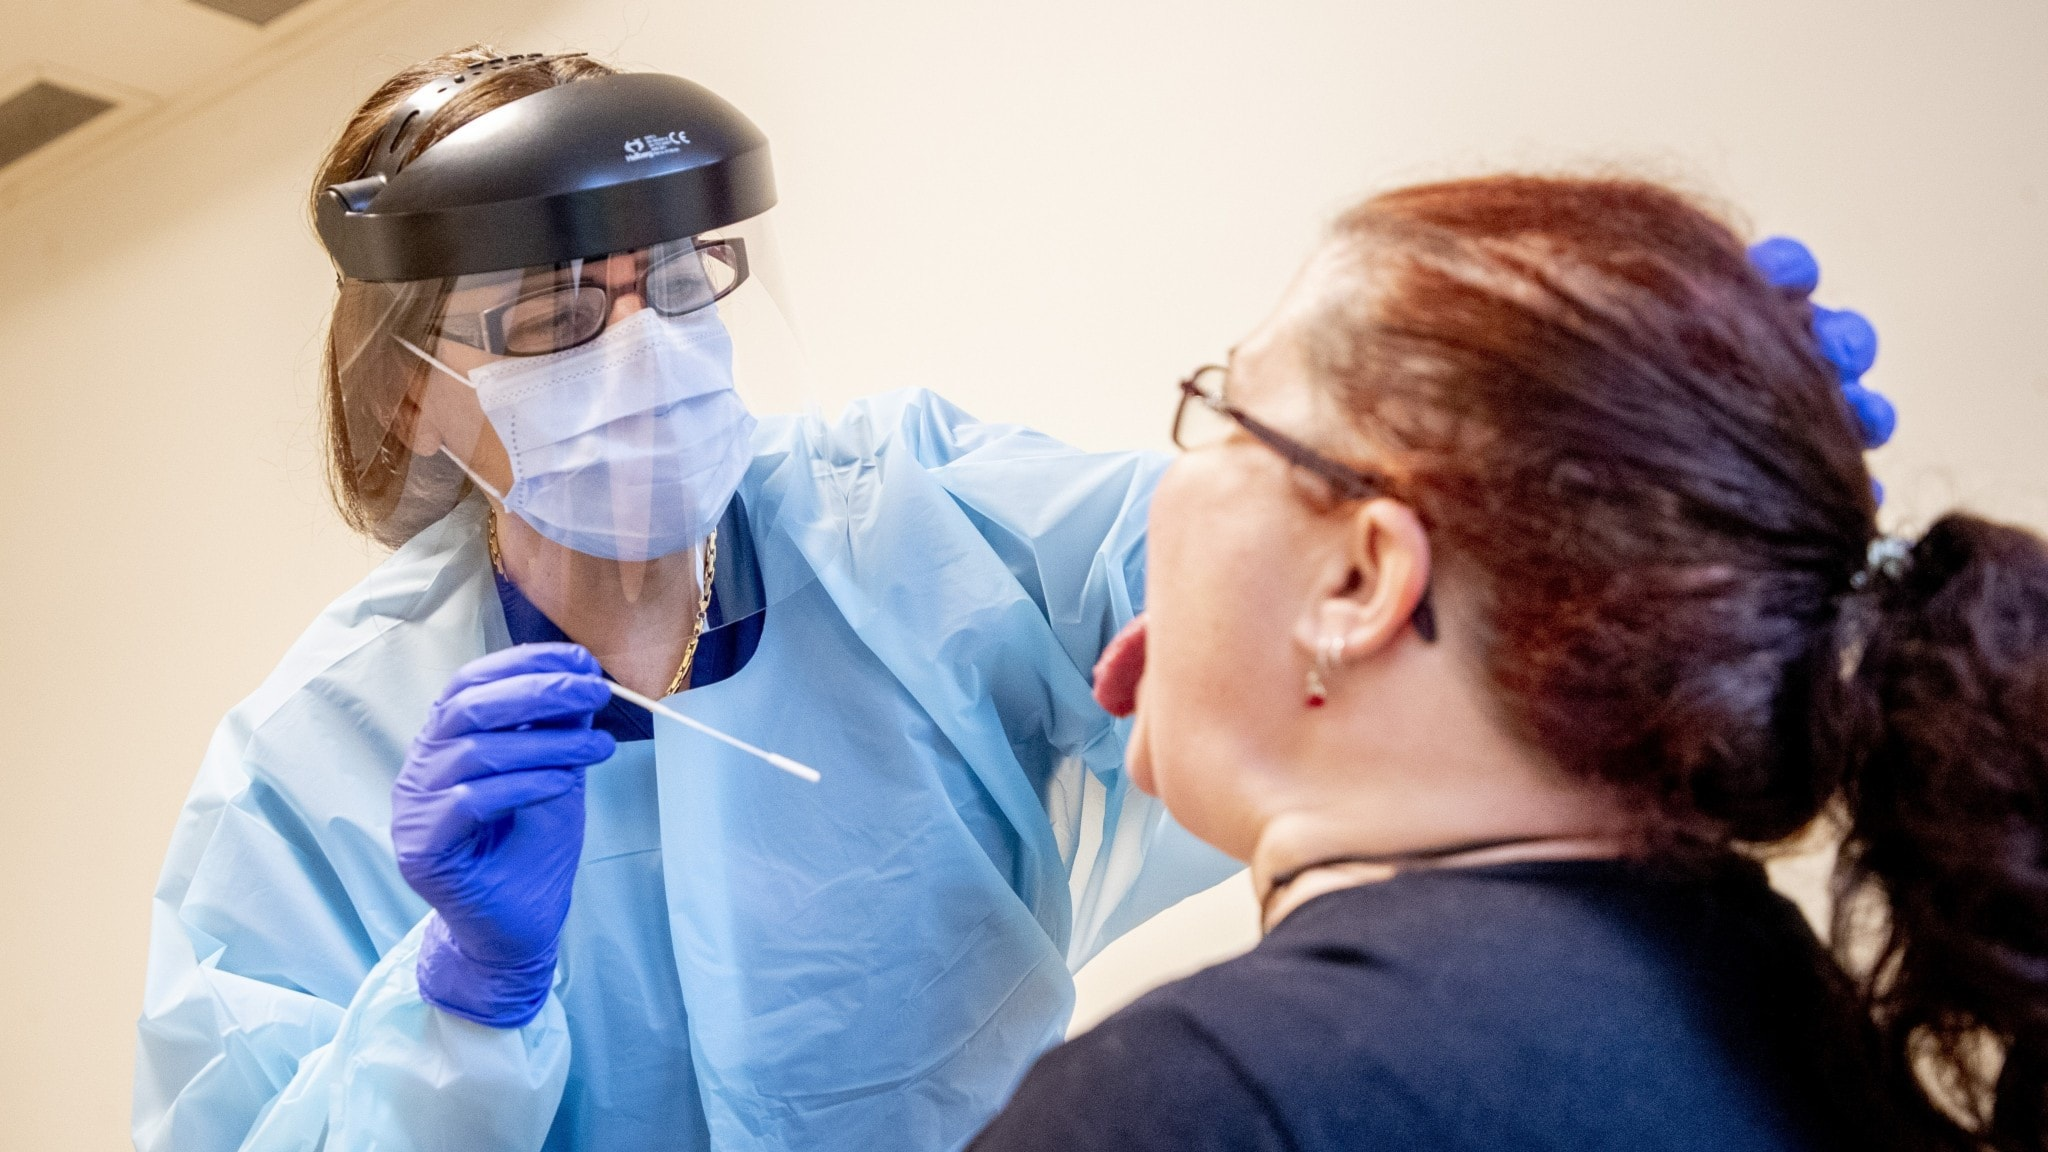 An image of a health care worker in PPE holding a swab above a woman's head.